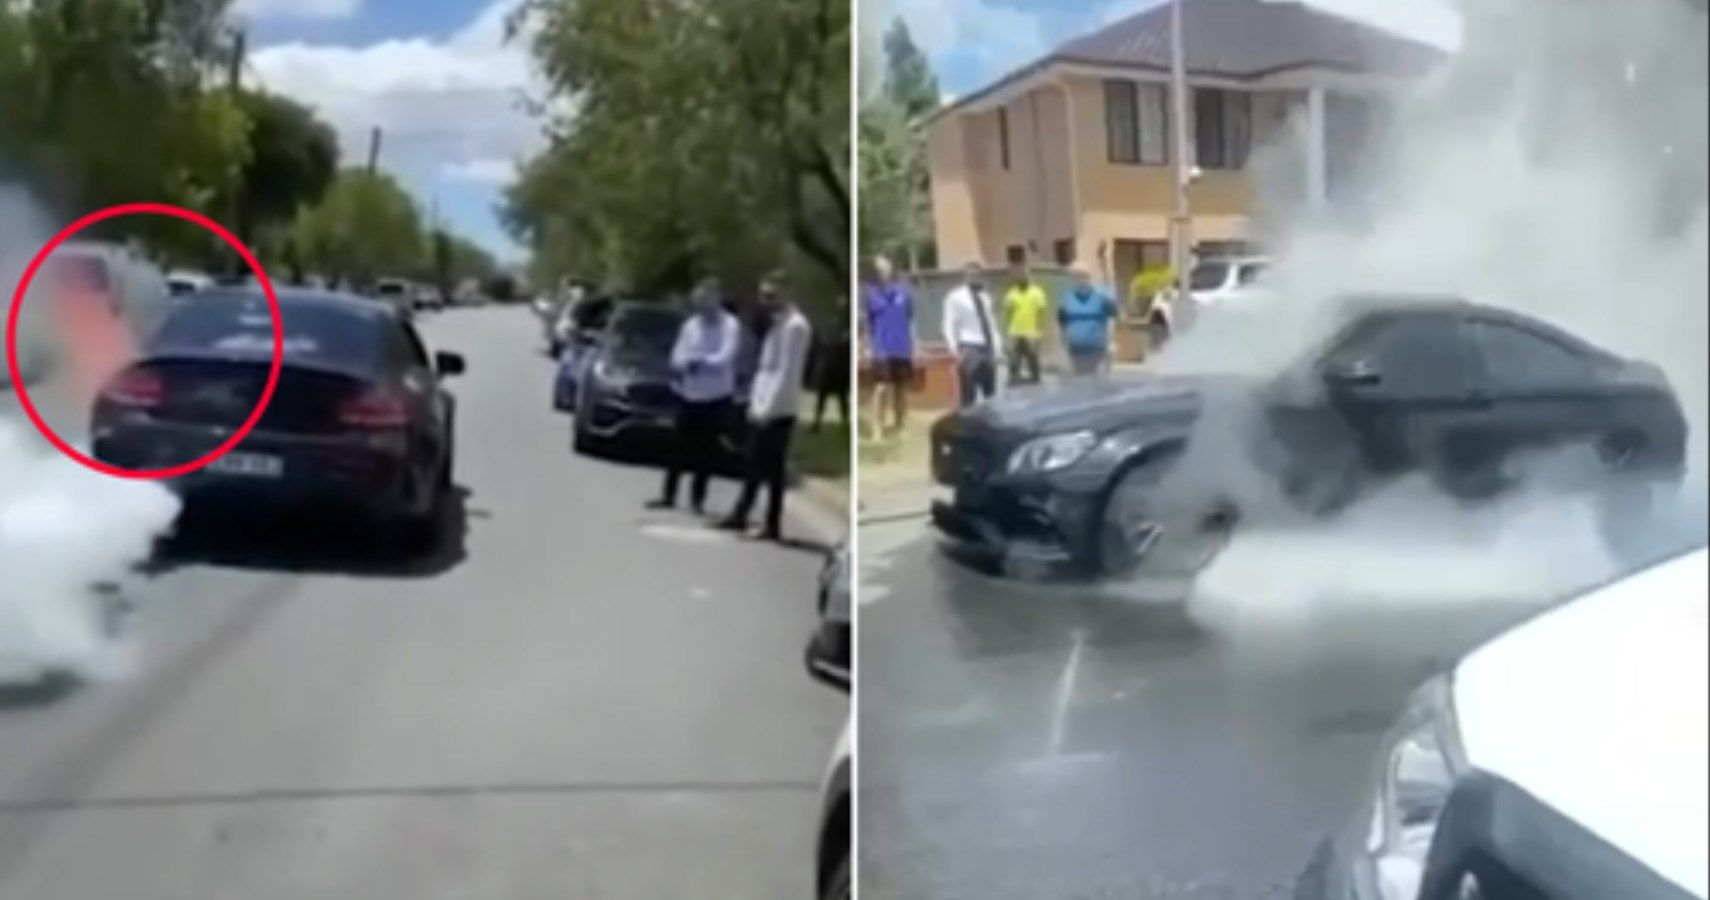 Watch This Mercedes-AMG C63 Owner Completely Destroy His Car After Epic Burnout Fail